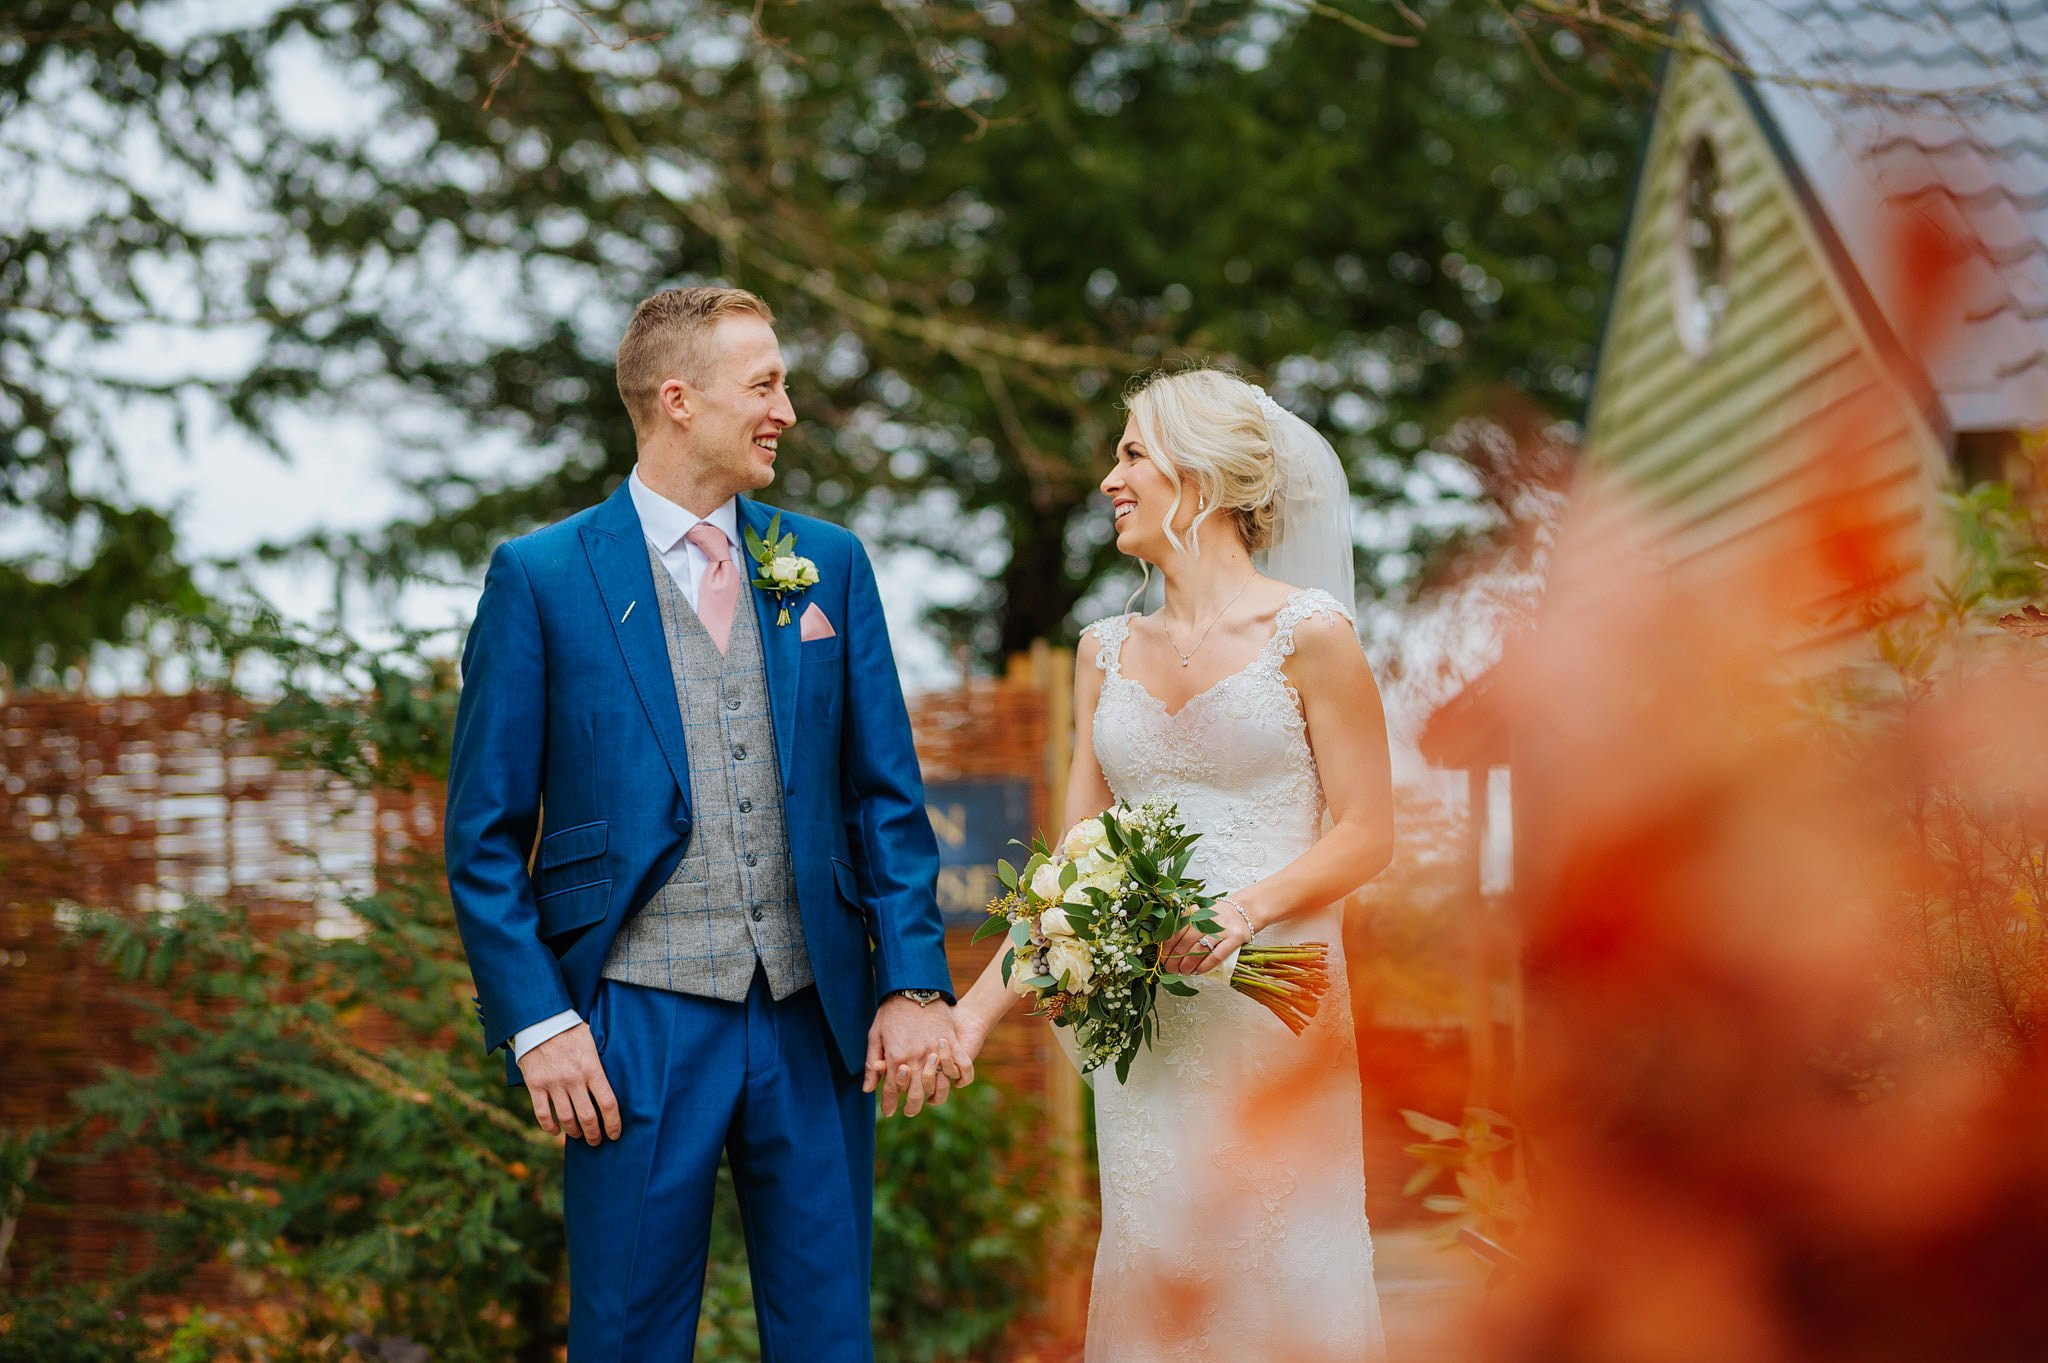 Sigma 85mm F1.4 ART review vs Wedding Photography 9